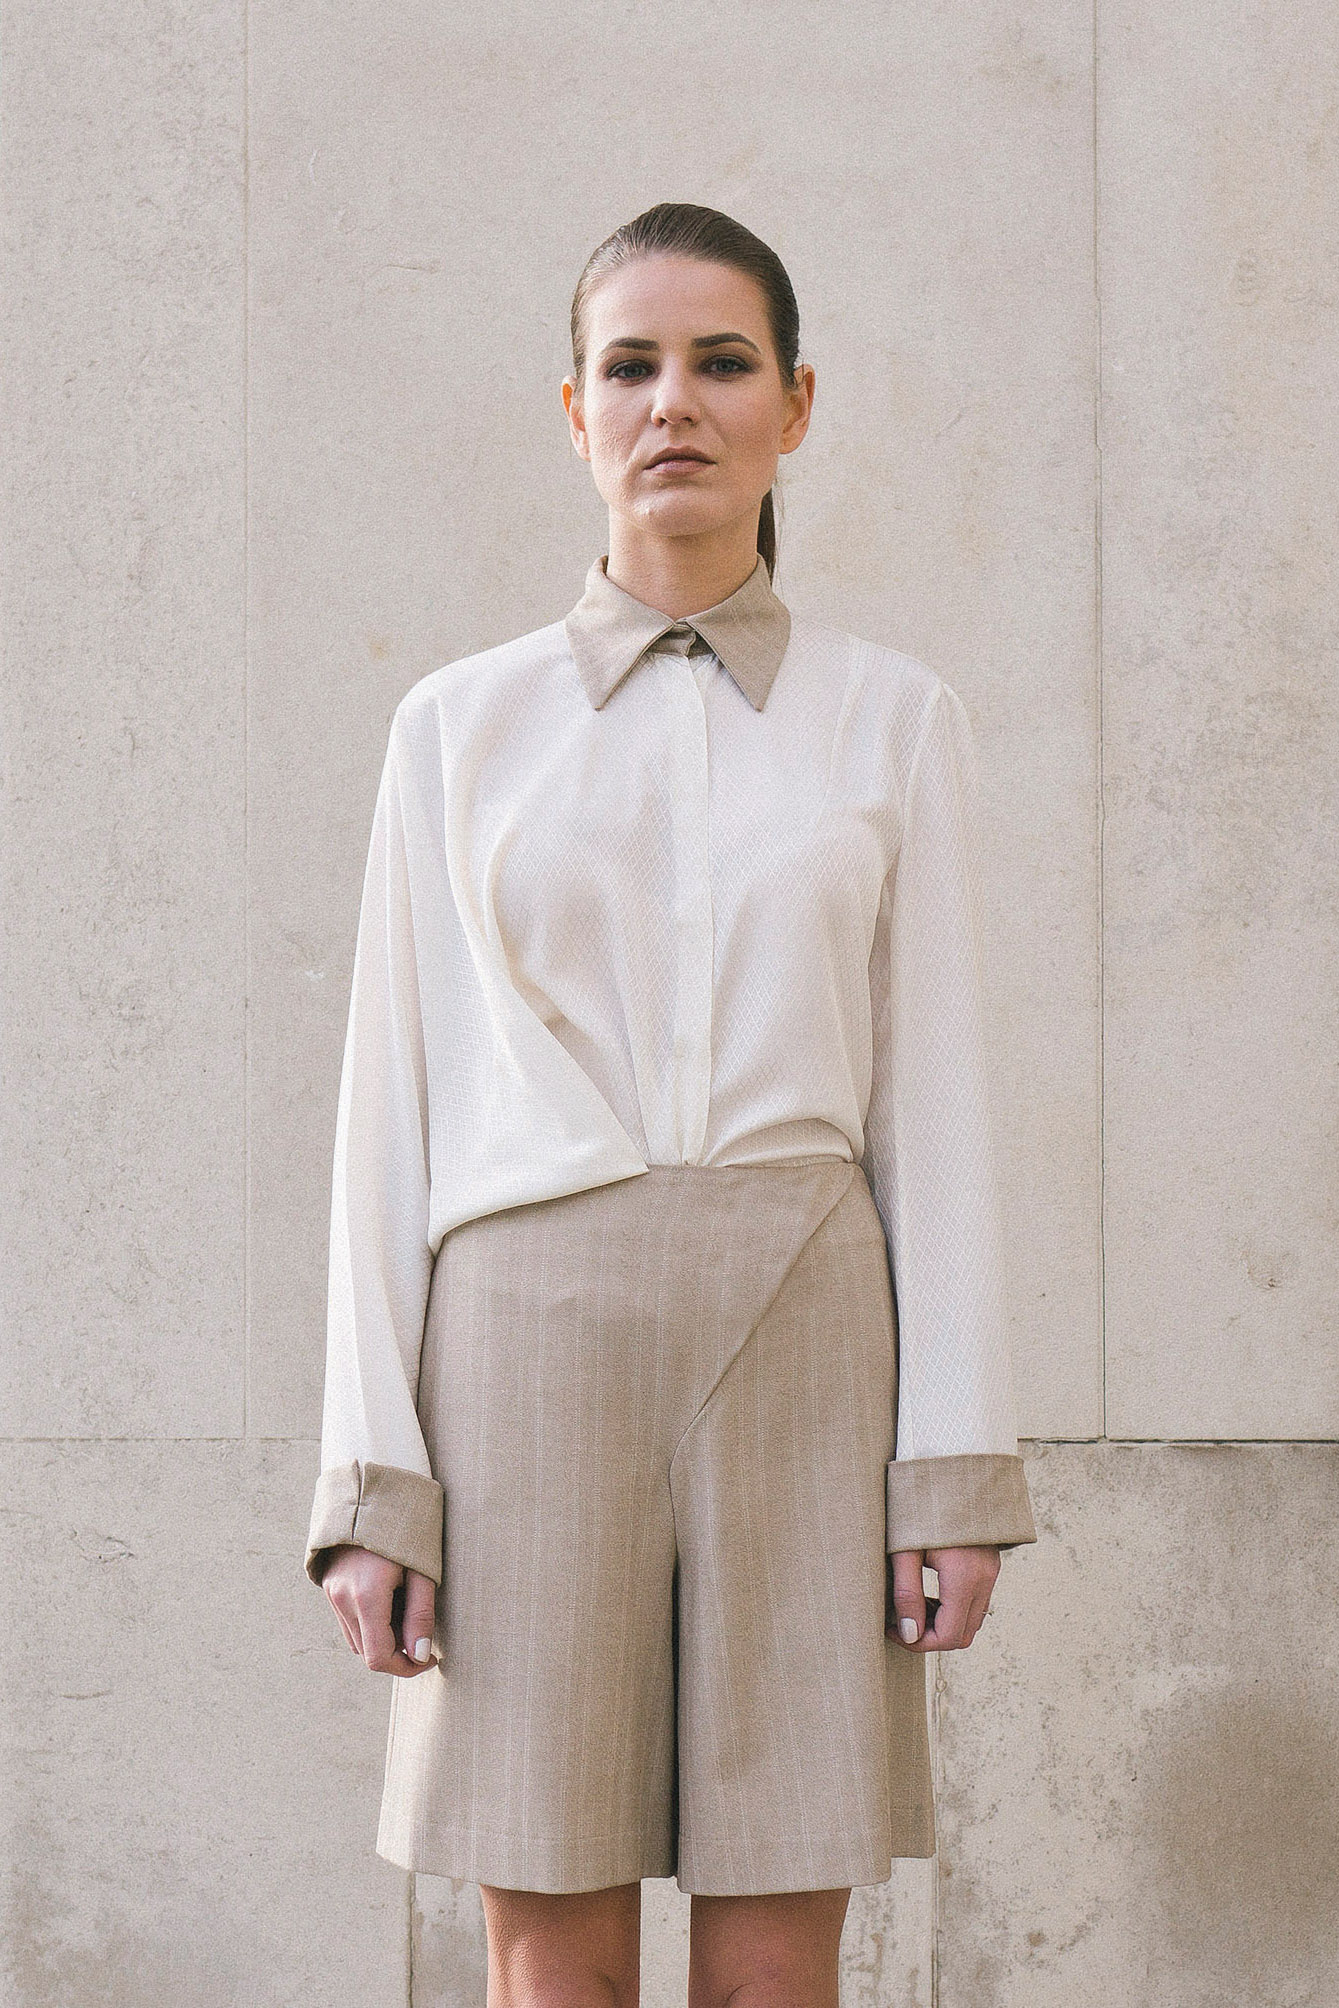 Isabel Wong Segue White Blouse and Warm Grey Pinstripe Tailored Shorts - Asymmetric Draped Front